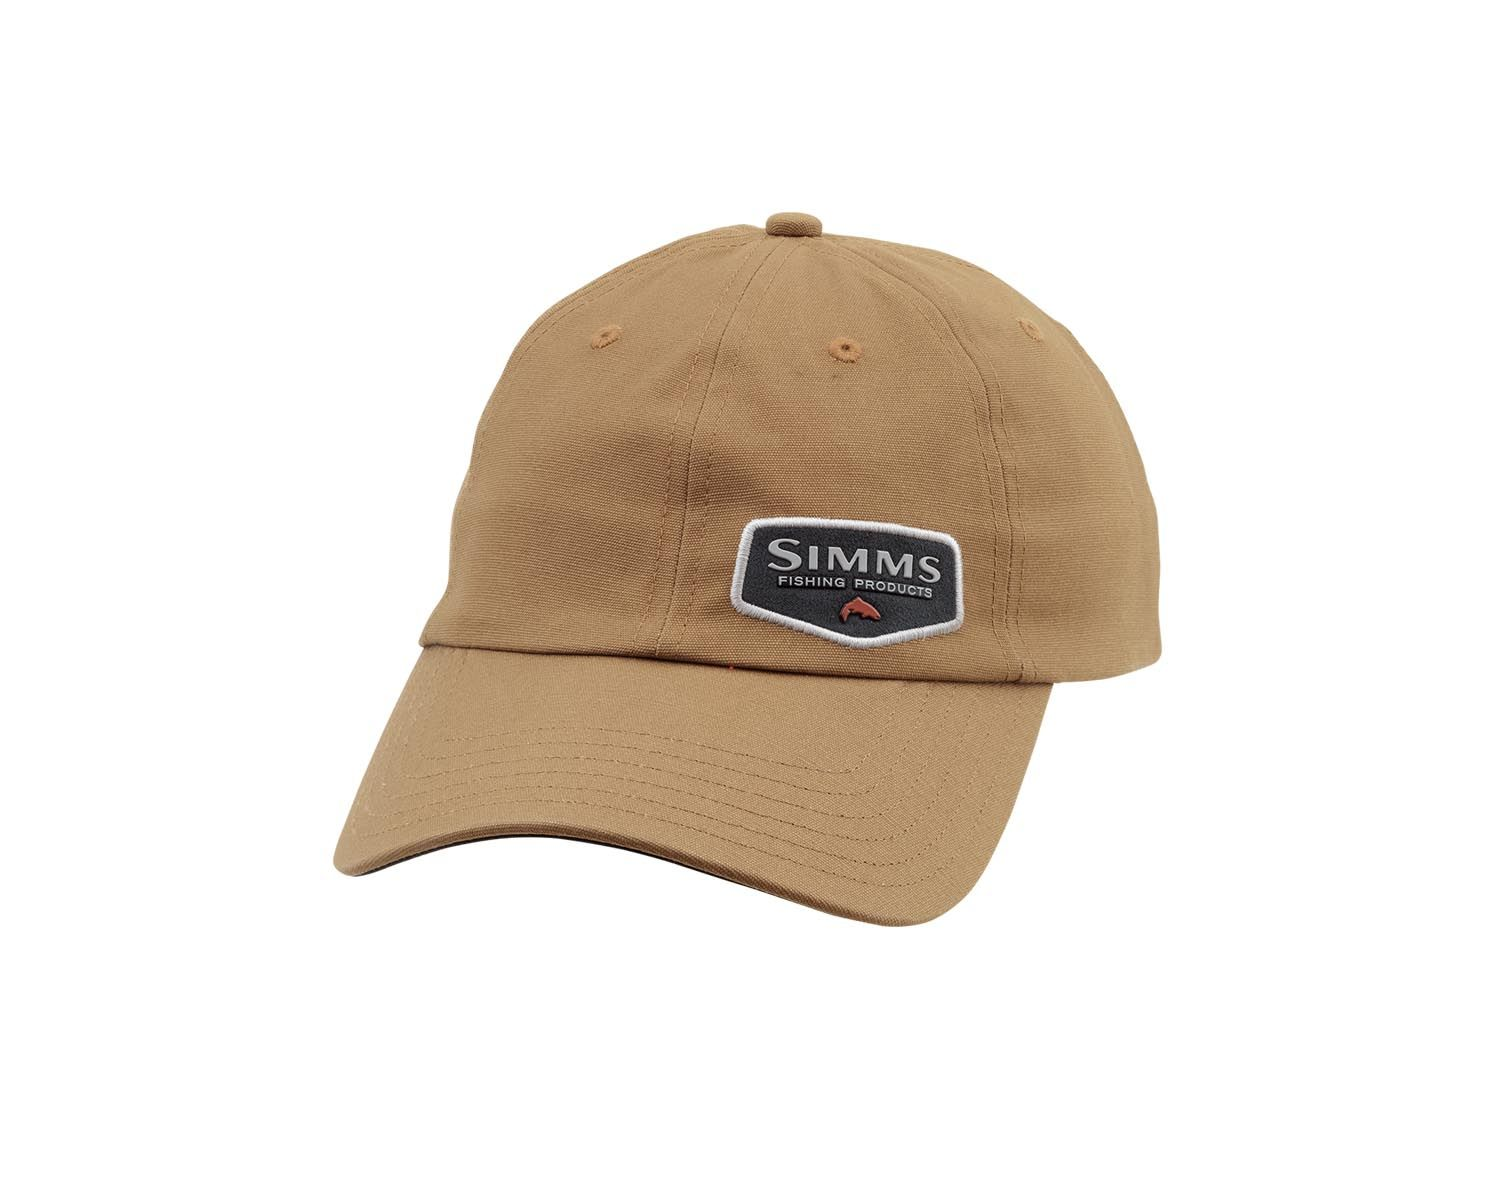 Simms Oil Cloth Cap_1.jpg